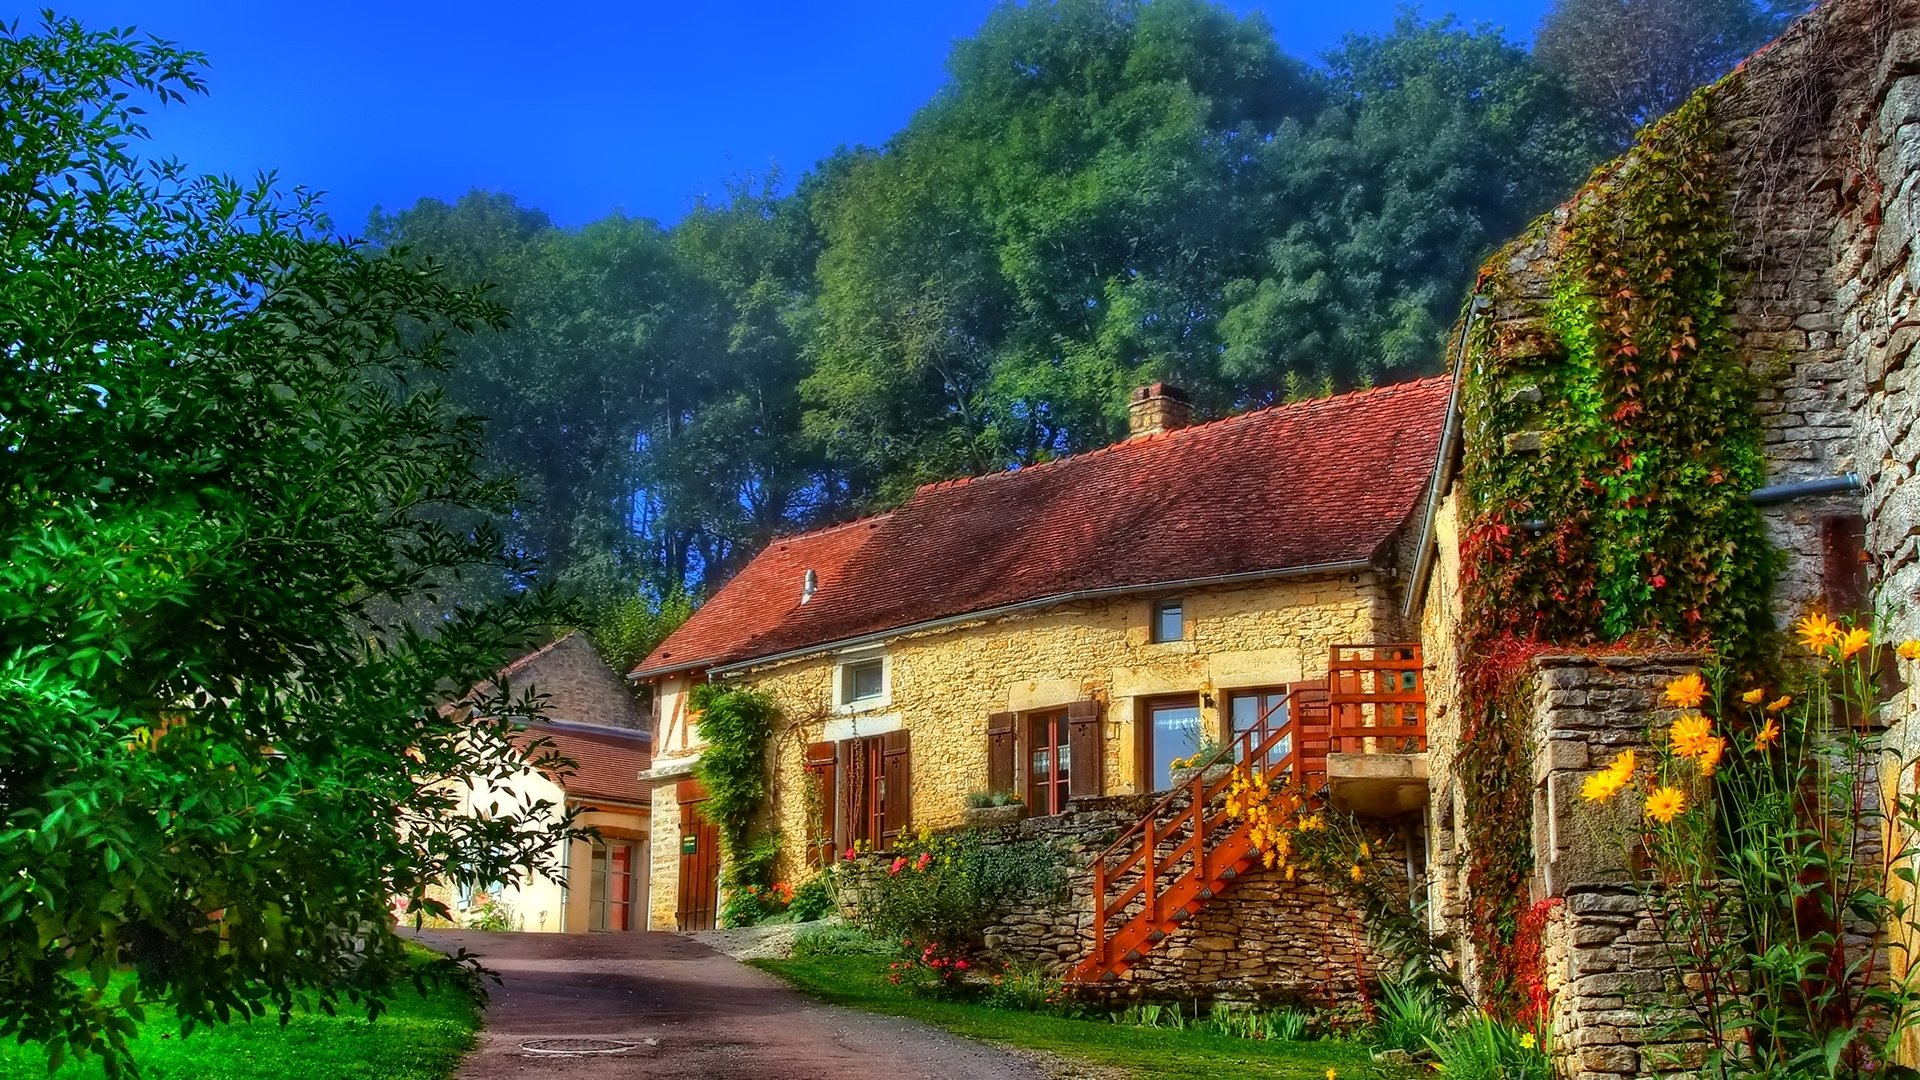 Houses in the Countryside Wallpaper